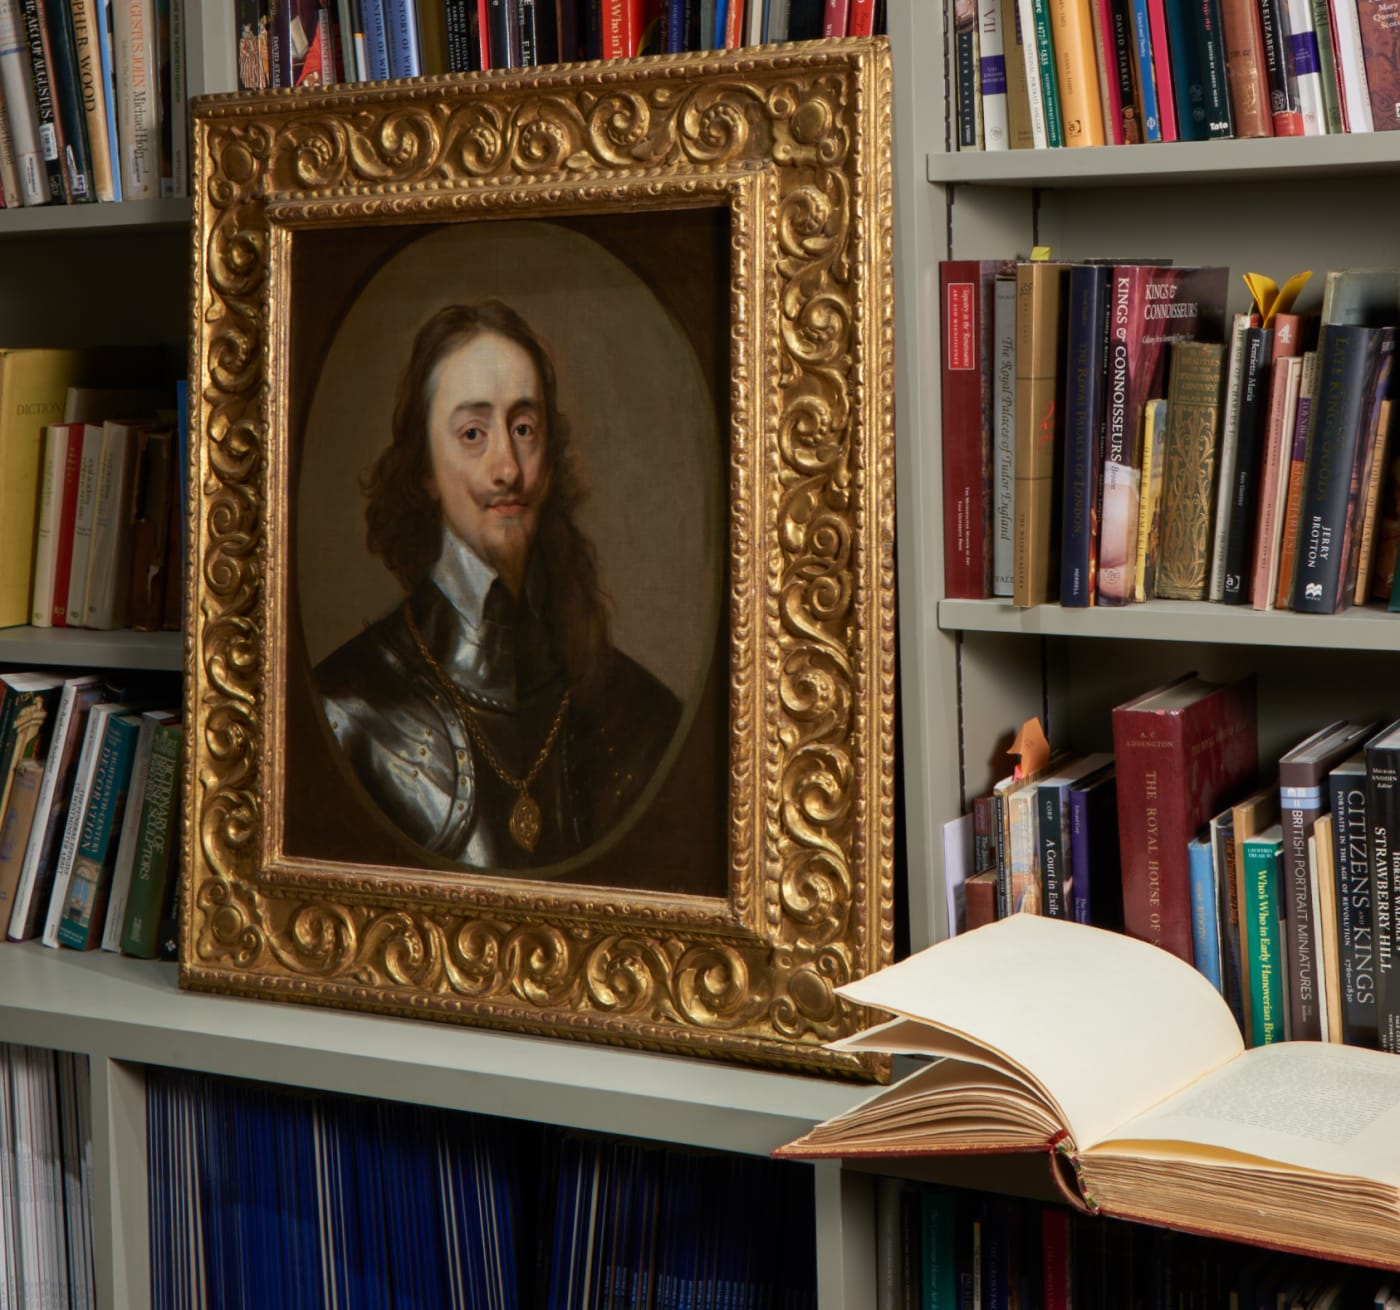 Oil on canvas Portrait of King Charles I shown in the Philip Mould & Company library